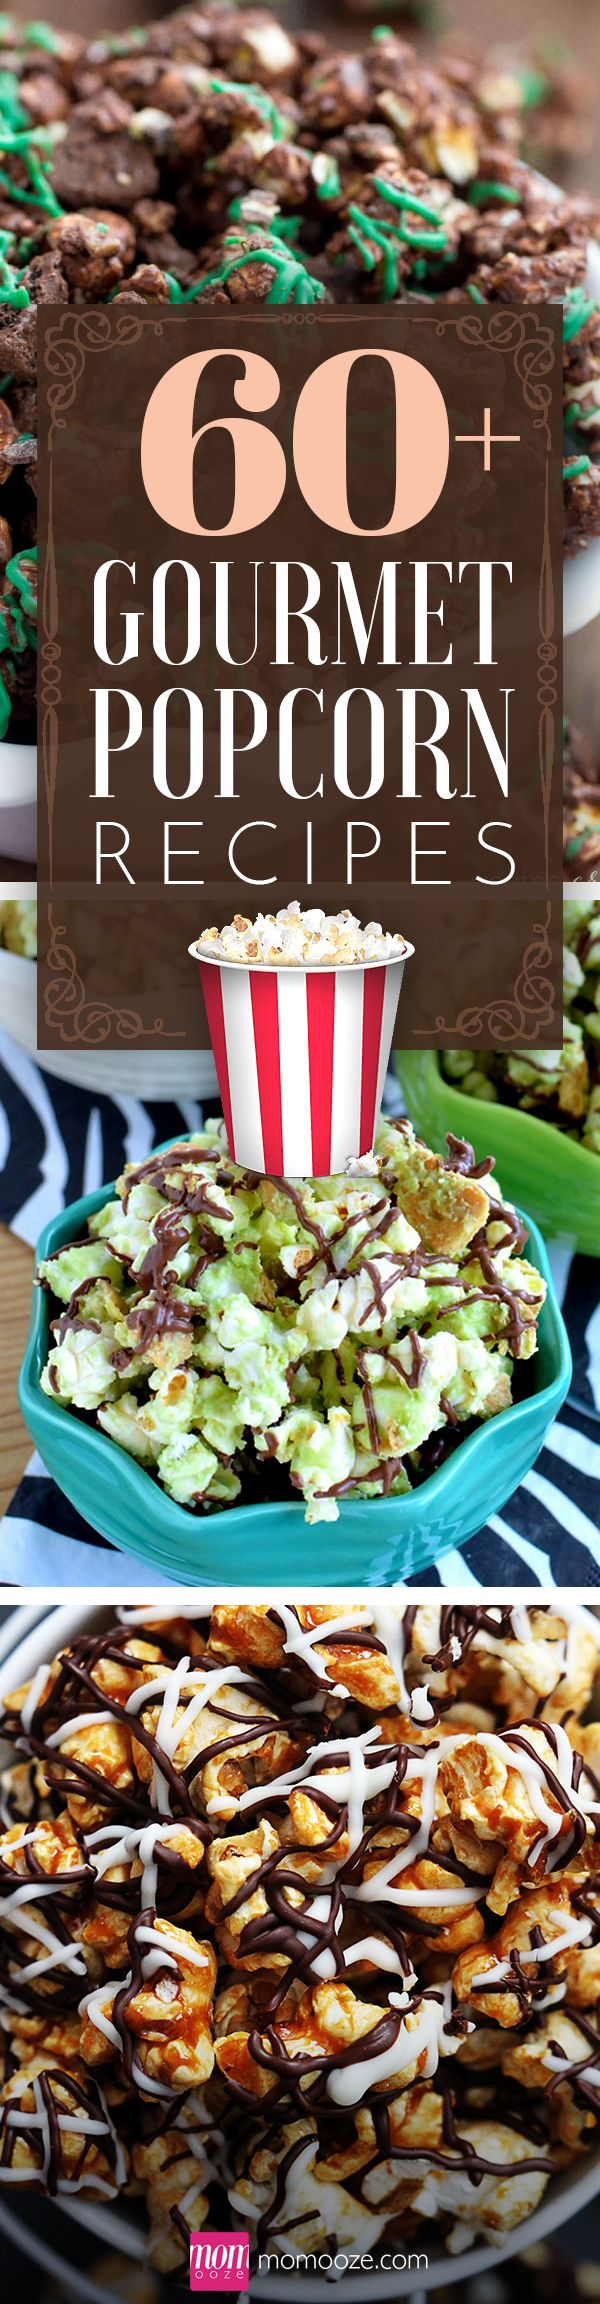 60+ Gourmet Popcorn Recipes to Spice up your Movie Night #popcorn #gourmet #movienight